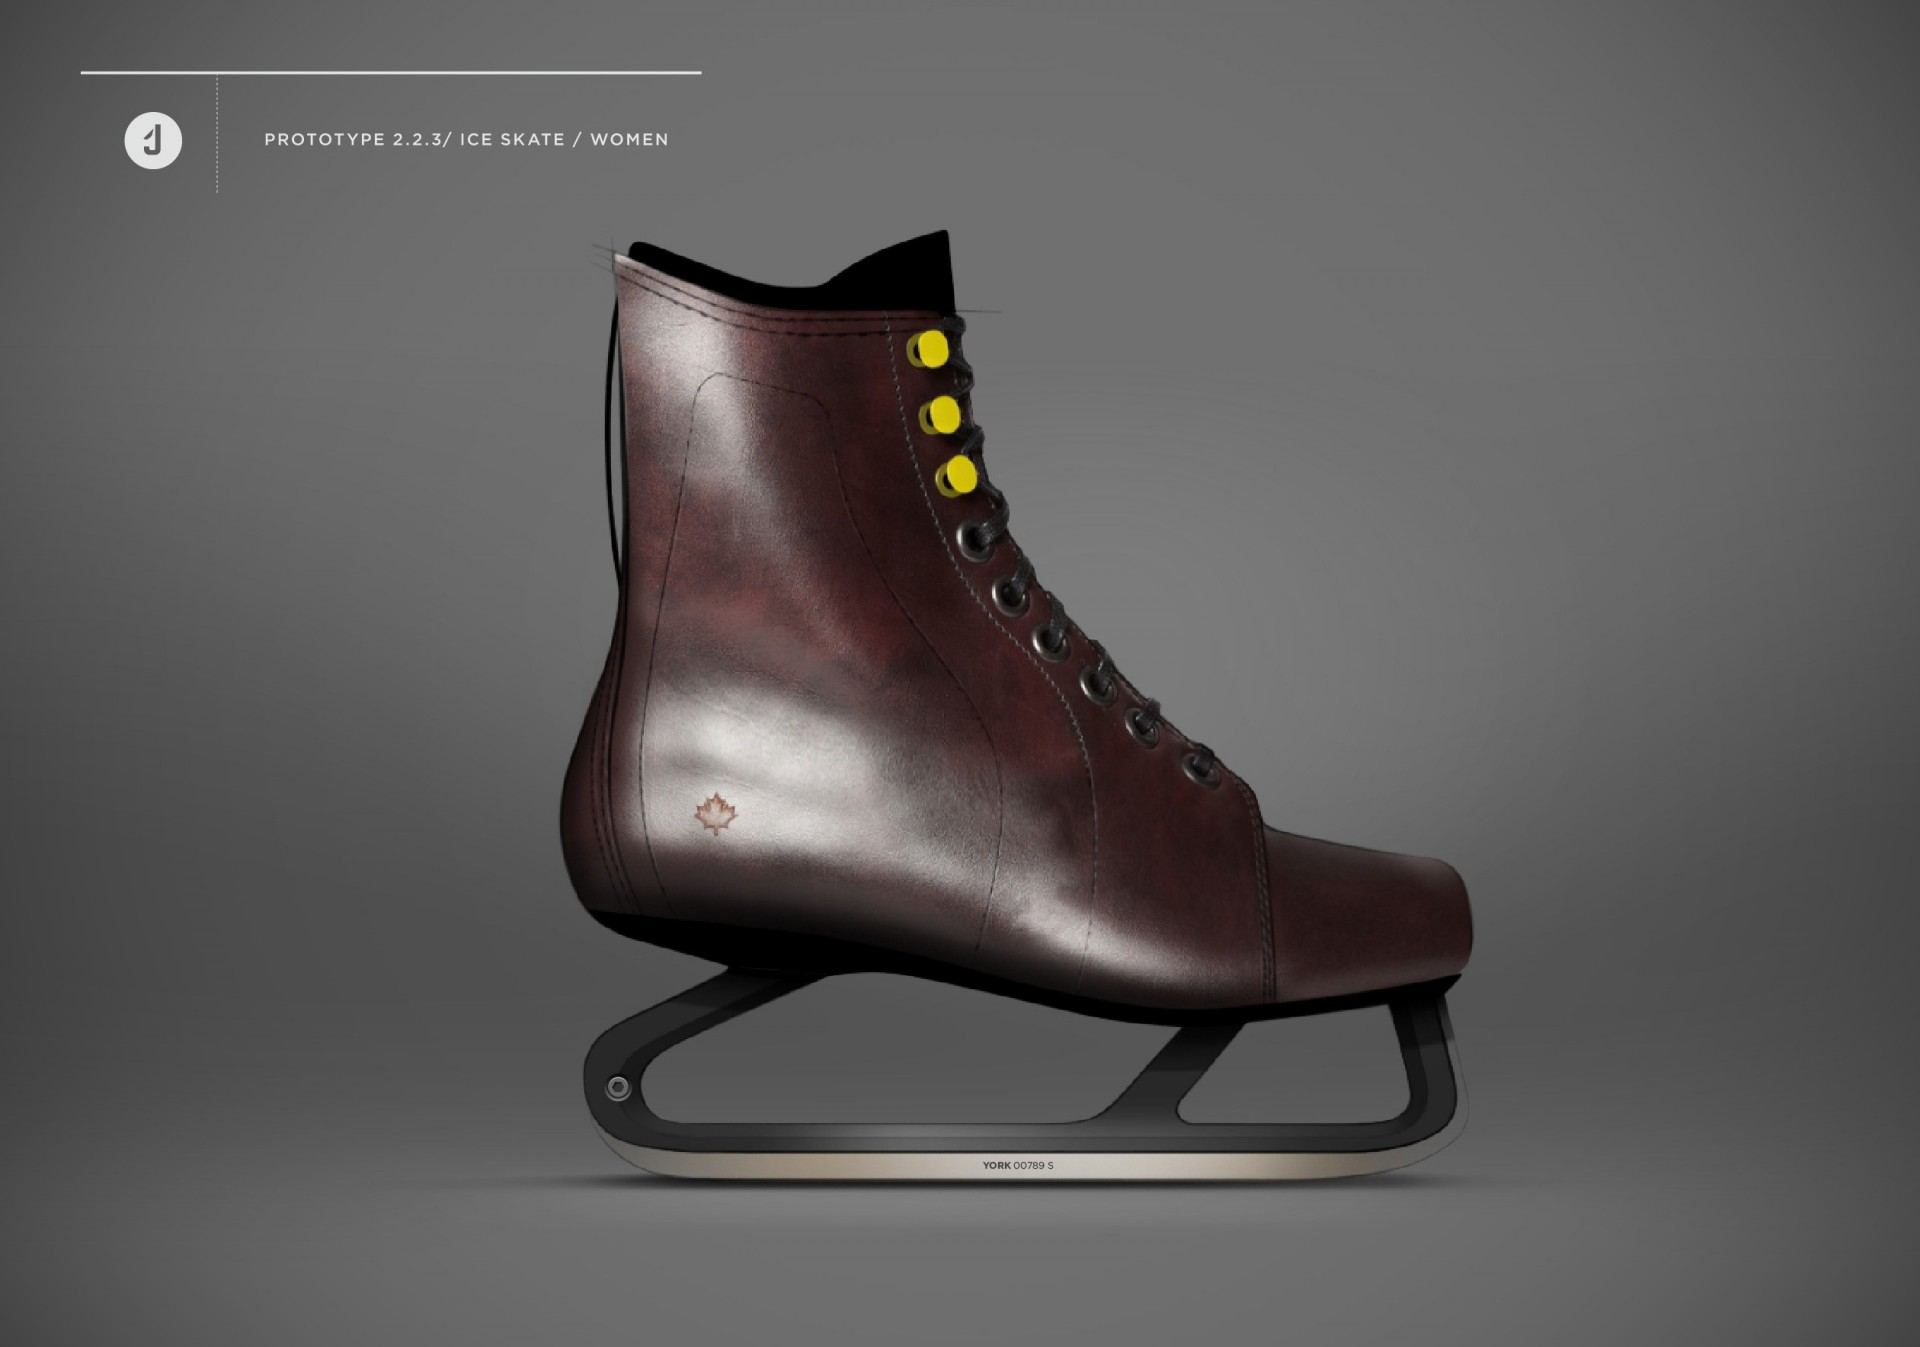 new ice skate design